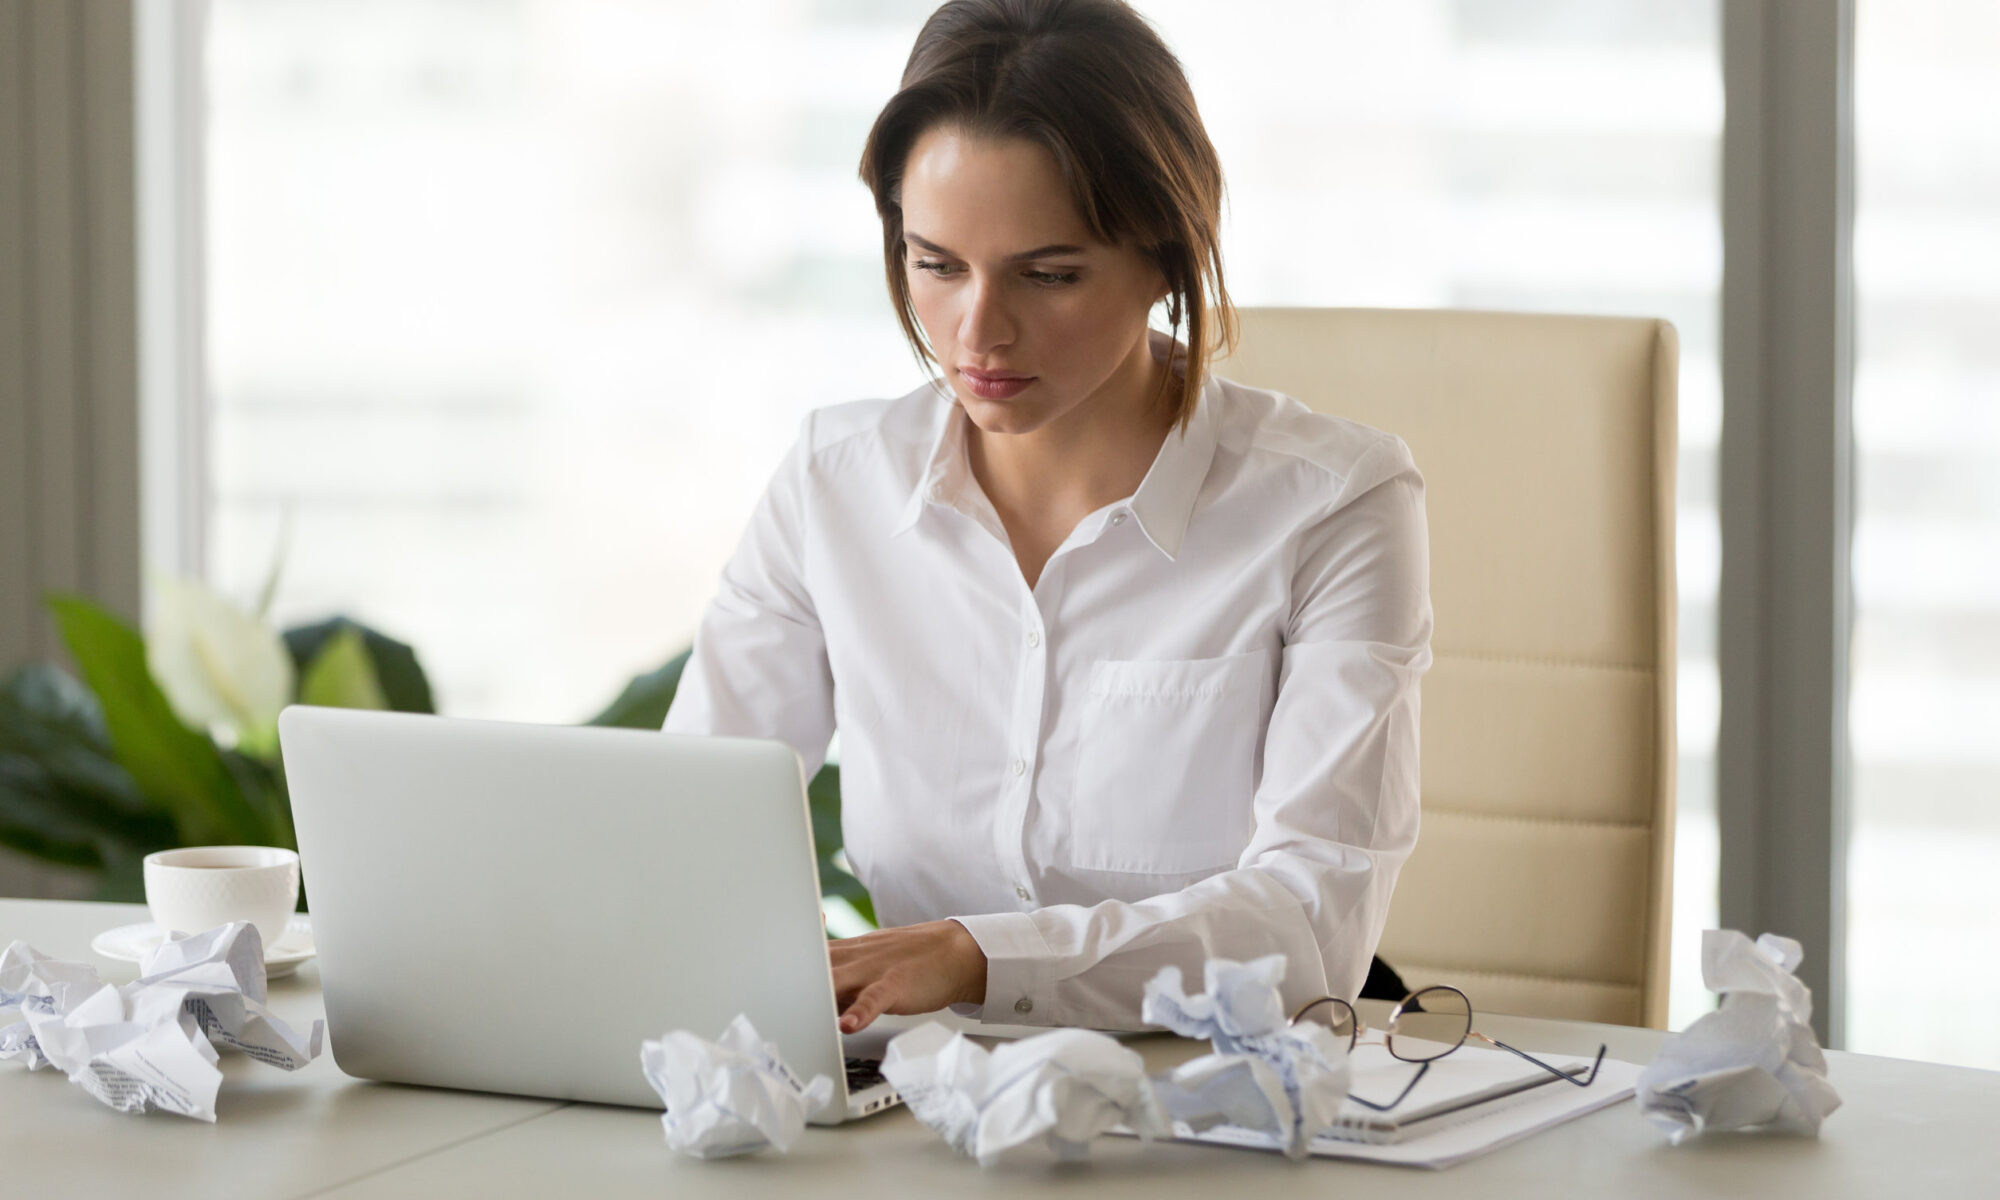 Upset businesswoman feel unmotivated trying to apply for jobs